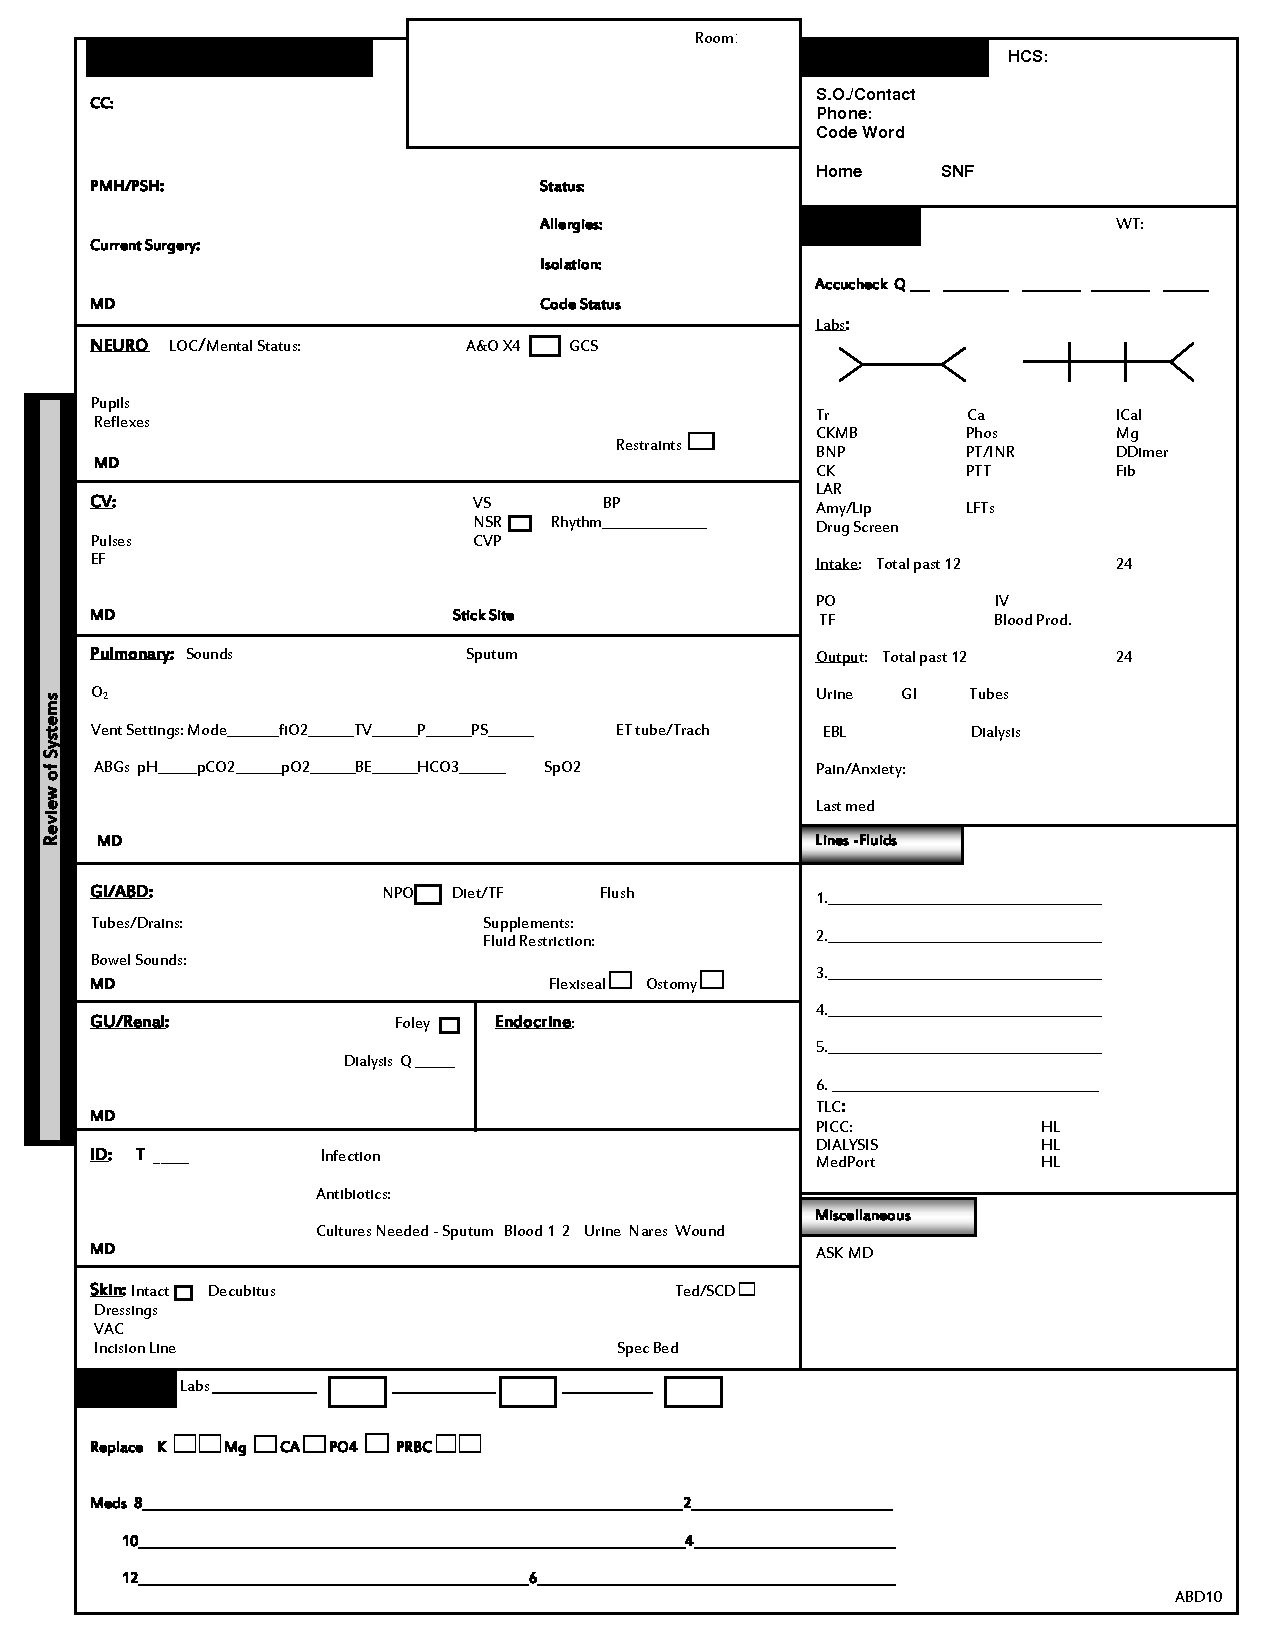 Icu Nurse Report Sheet Template | Nurse | Nurse Report Sheet Inside Icu Report Template